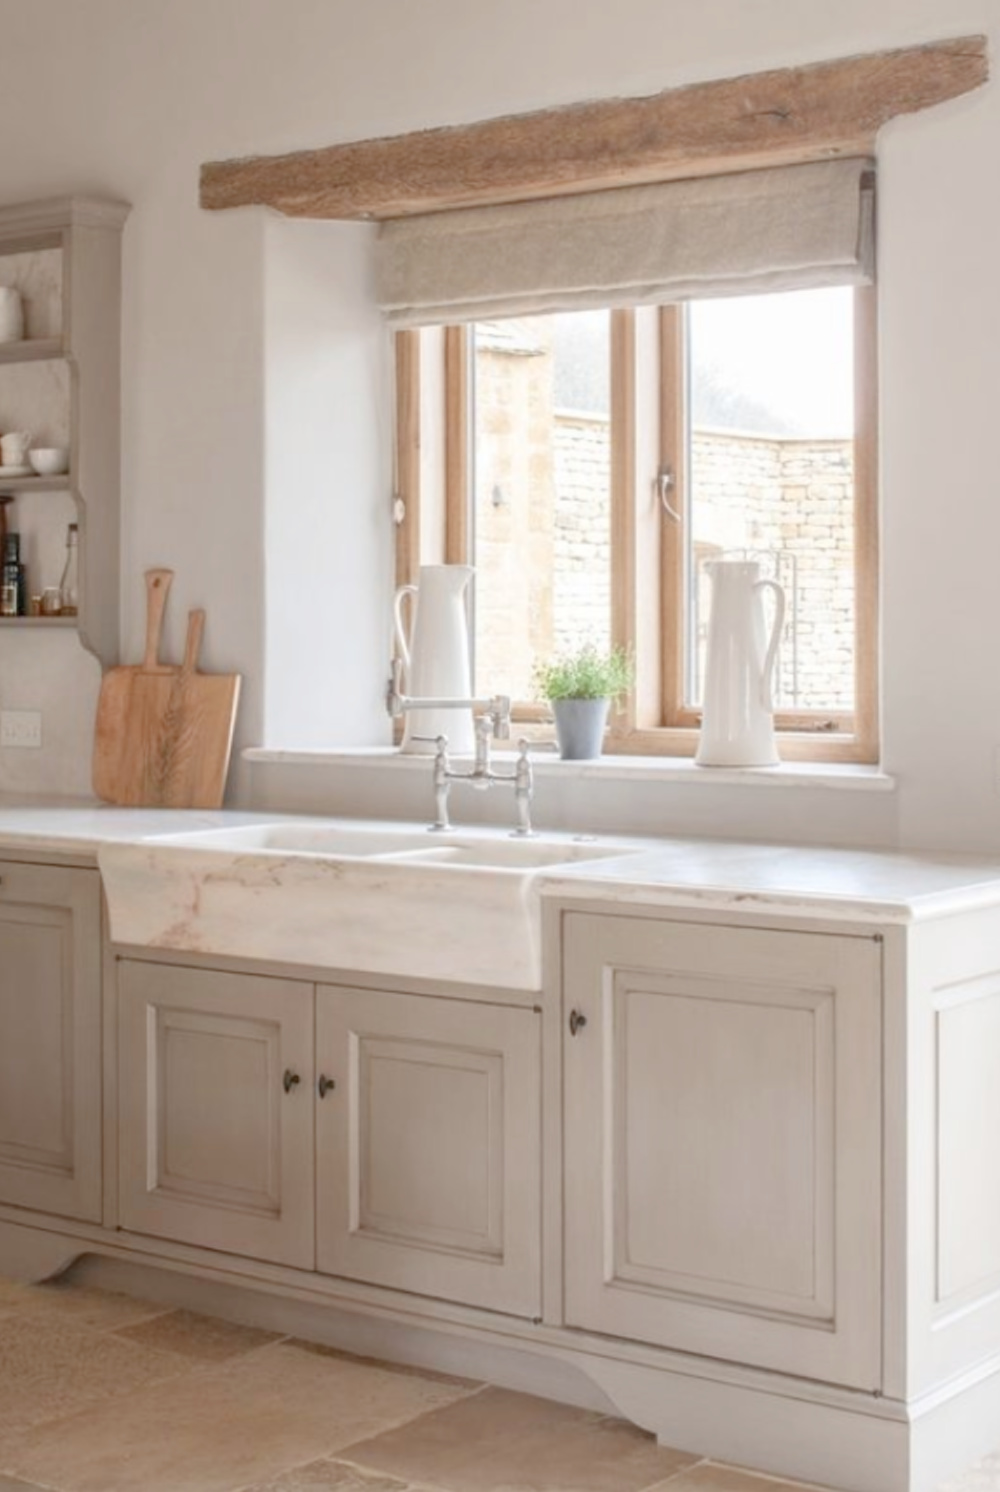 Bespoke kitchen design by Artichoke in this Old World space with Bentall marble sink, stone floor, and pale cupboards. #marblesink #bespokekitchen